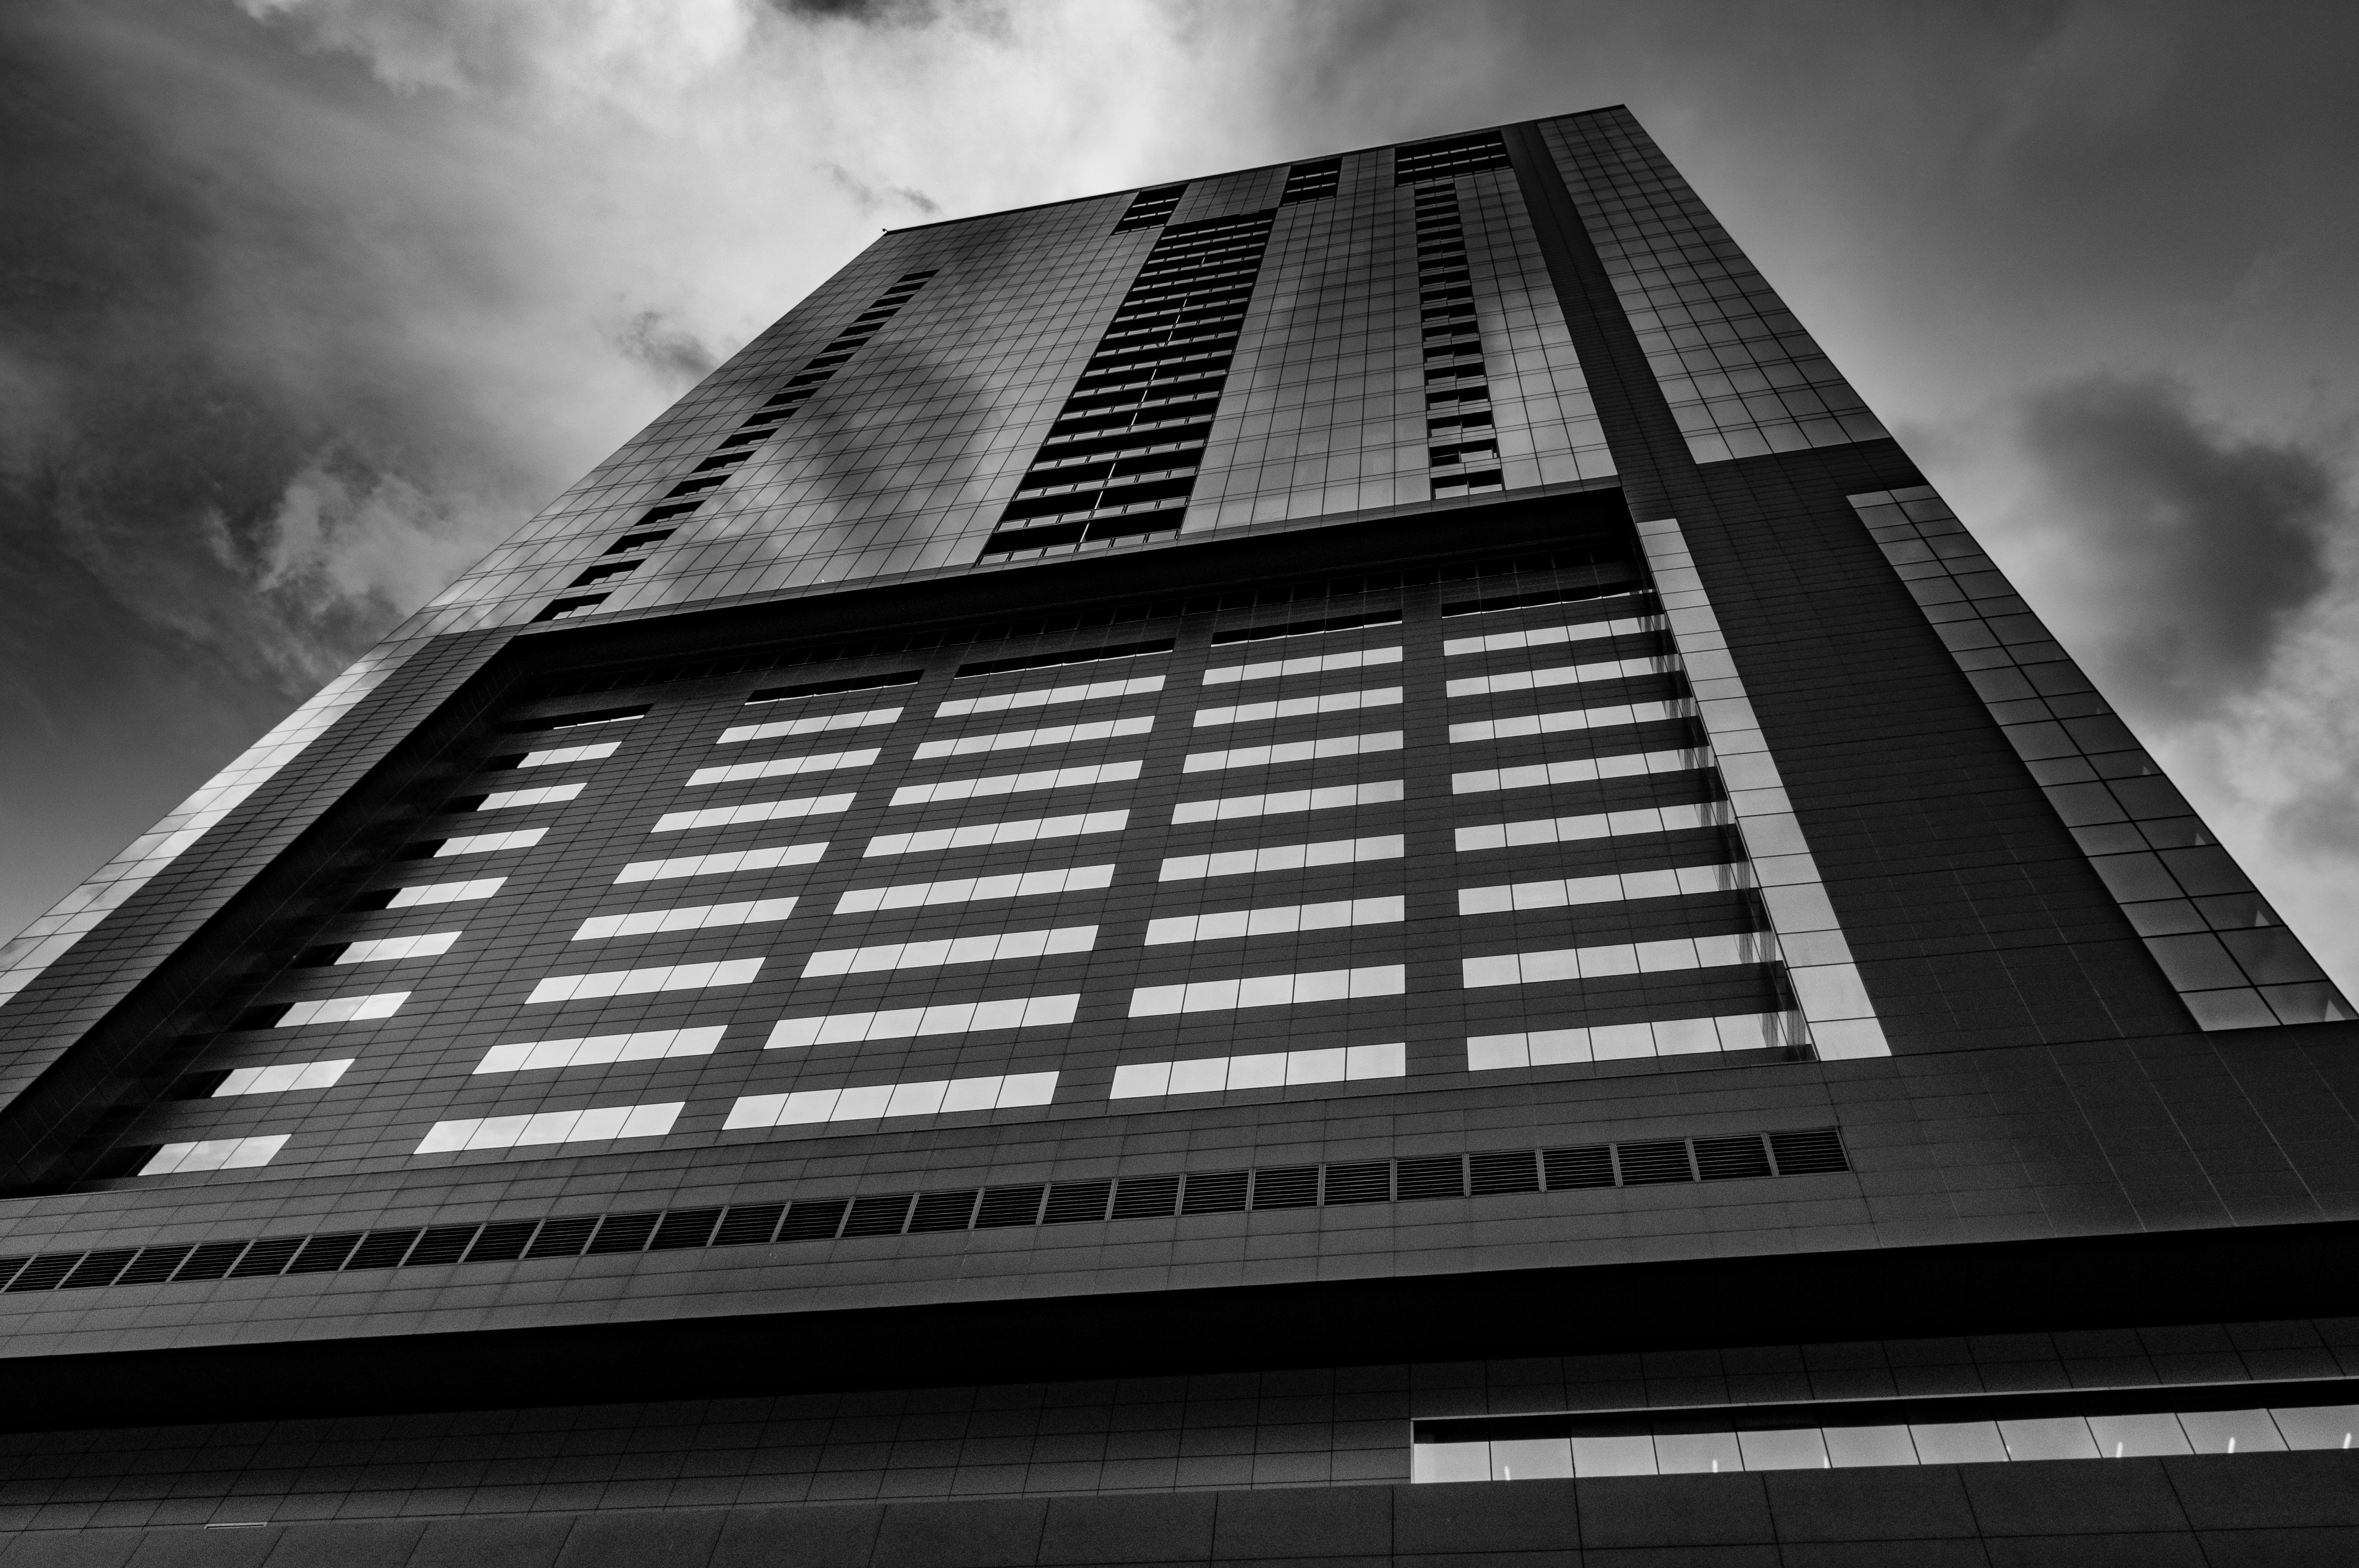 low angle and grayscale photo of high-rise building